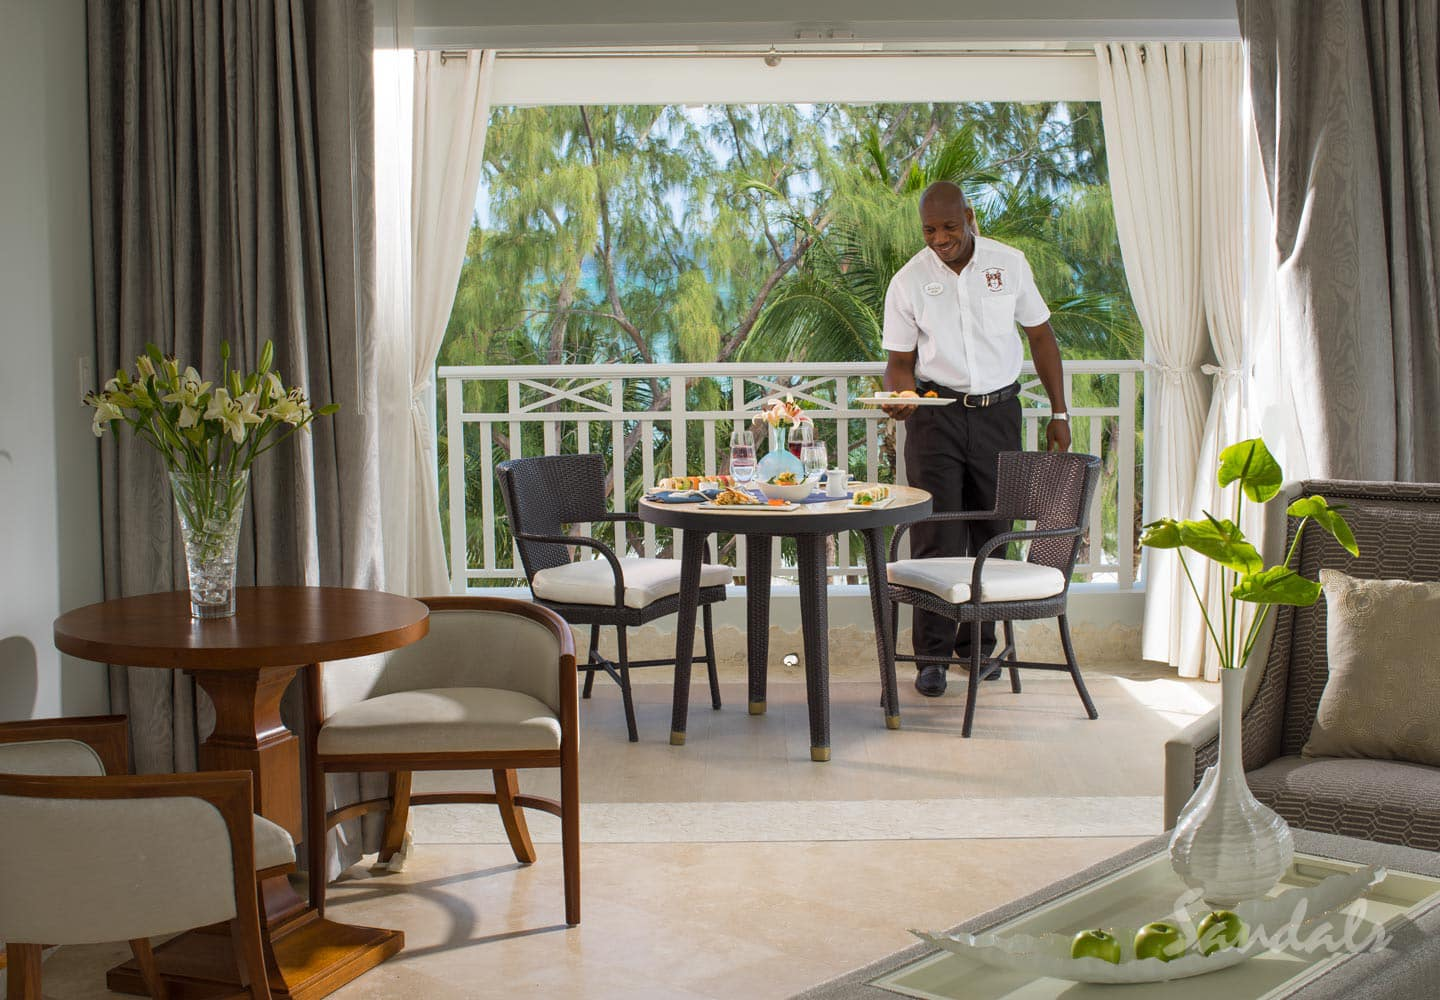 butler serving breakfast in private room at Sandals Barbados adult only resort, adult only vacation can be booked with Southern Travel Agency Augusta, GA